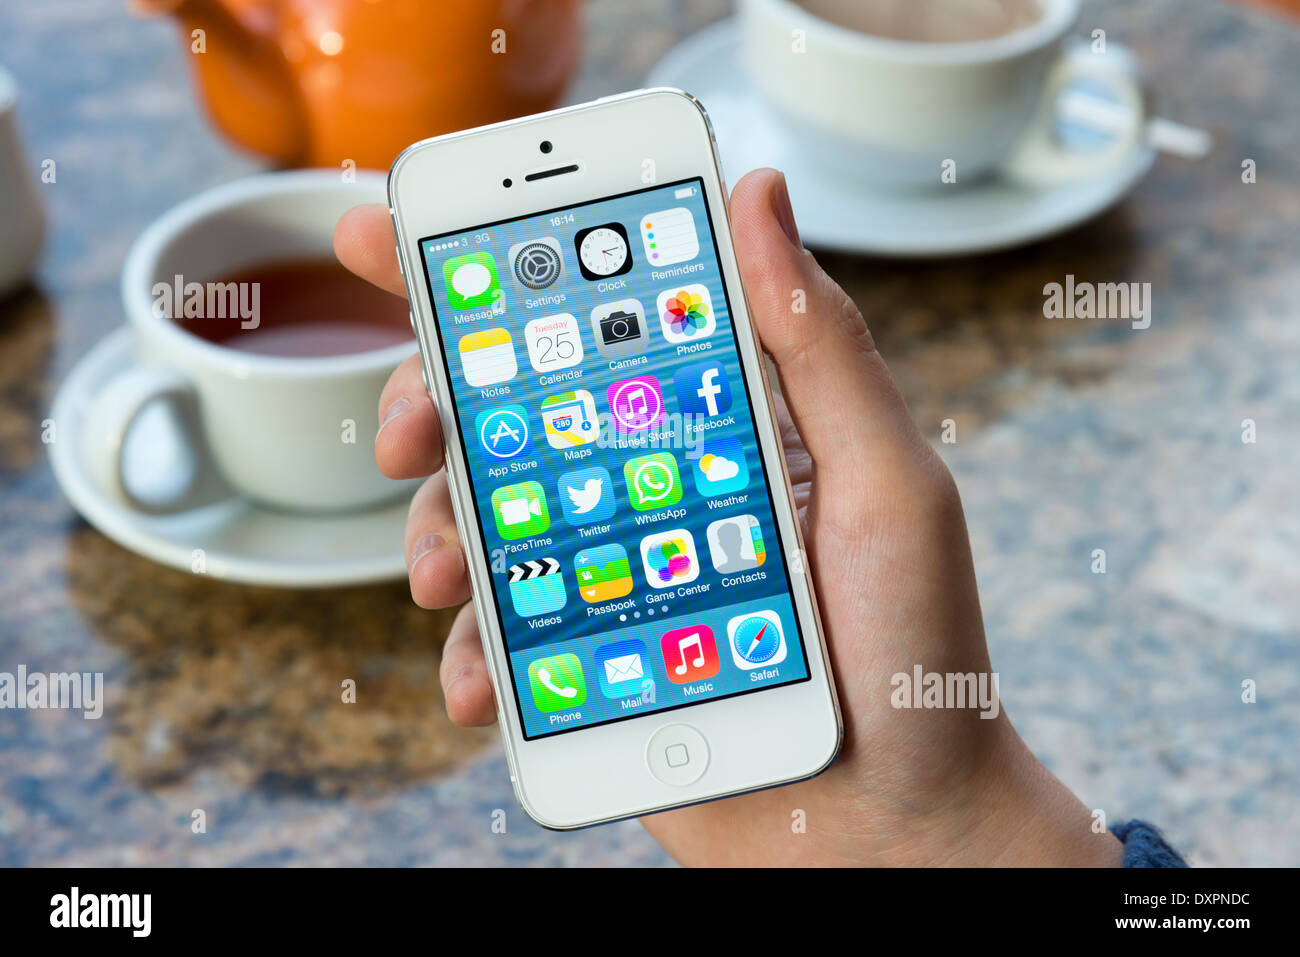 iOS 7 home screen of white Apple iPhone 5 in a cafe - Stock Image